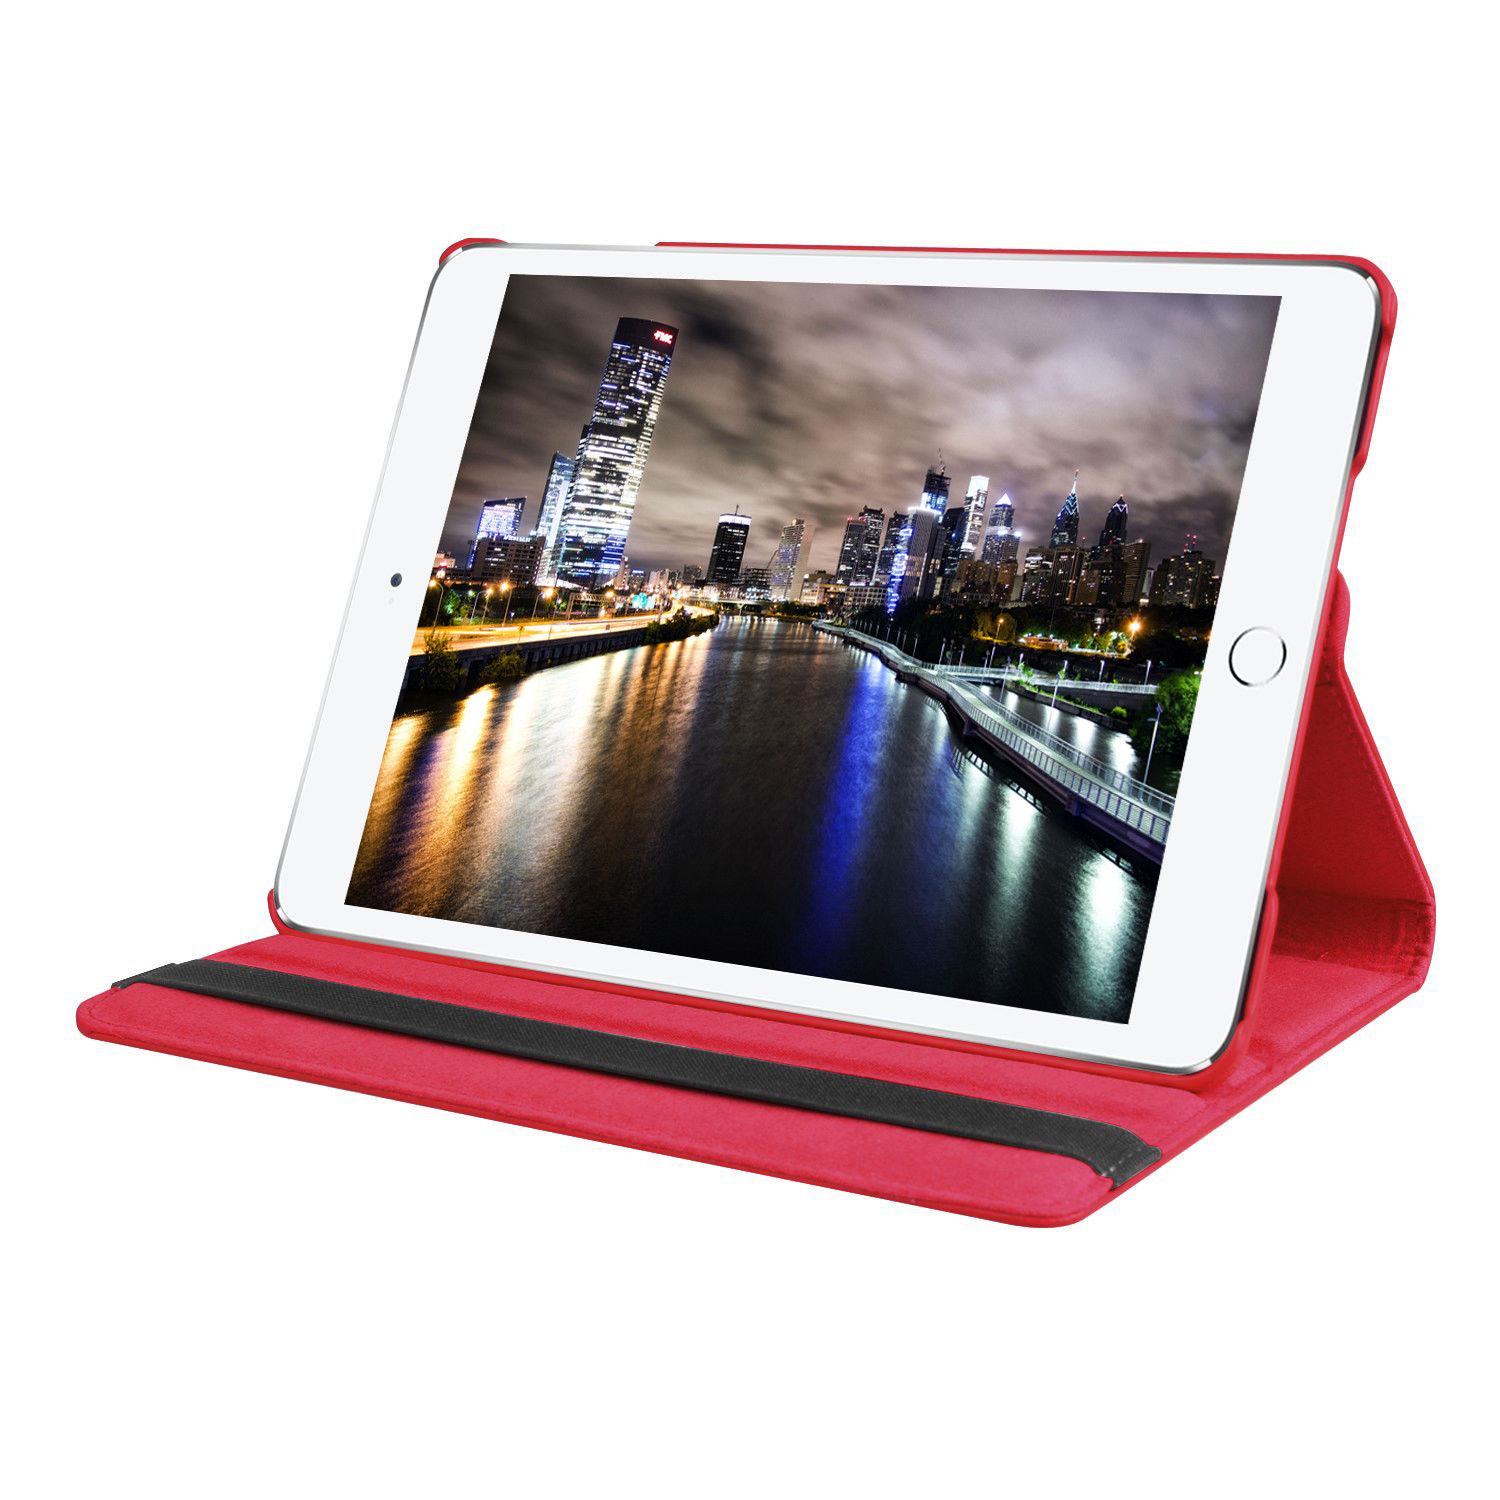 Custodia-per-Apple-iPad-Pro-2017-iPad-Air-3-10-5-Smart-Cover-Case-Custodia-Protettiva miniatura 26